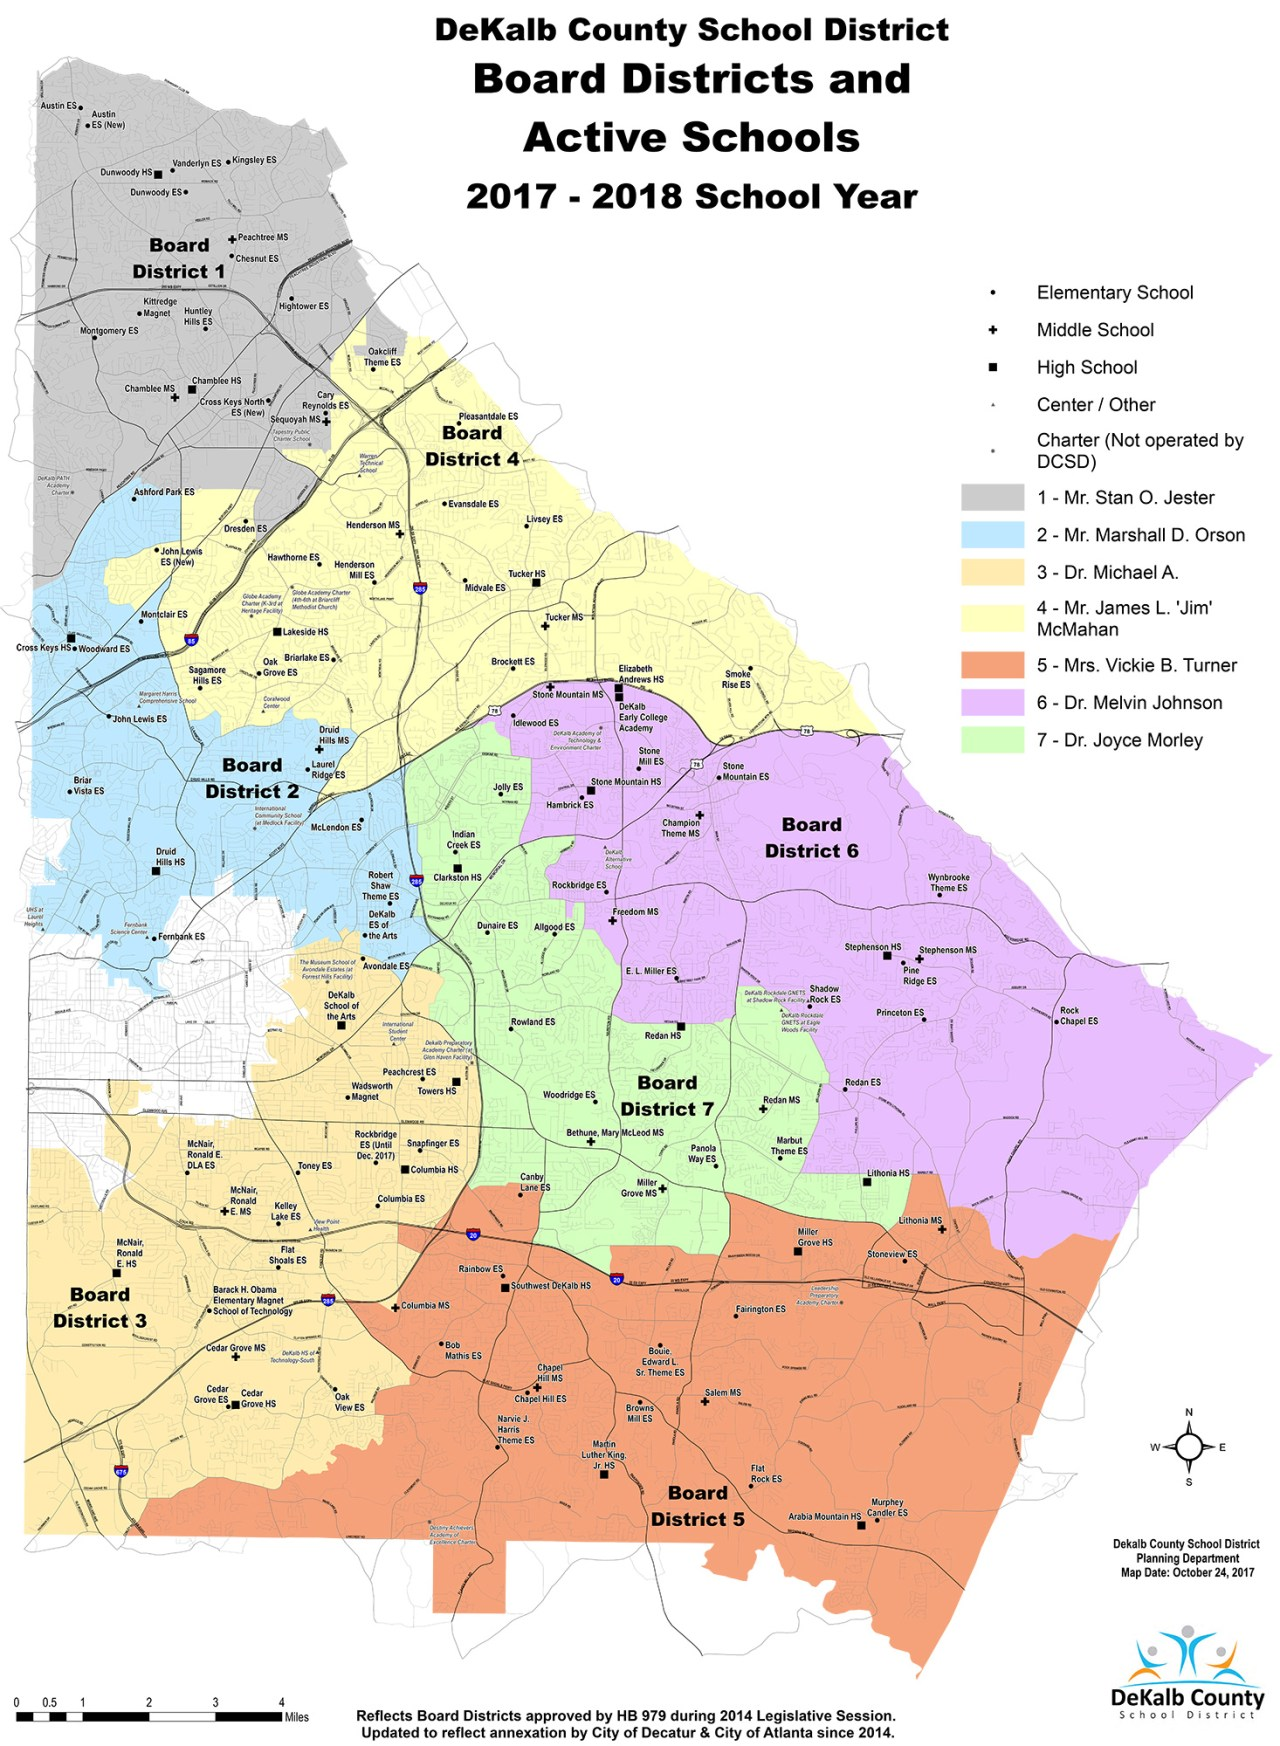 Board of Education District map 2016 - 2017 School Year